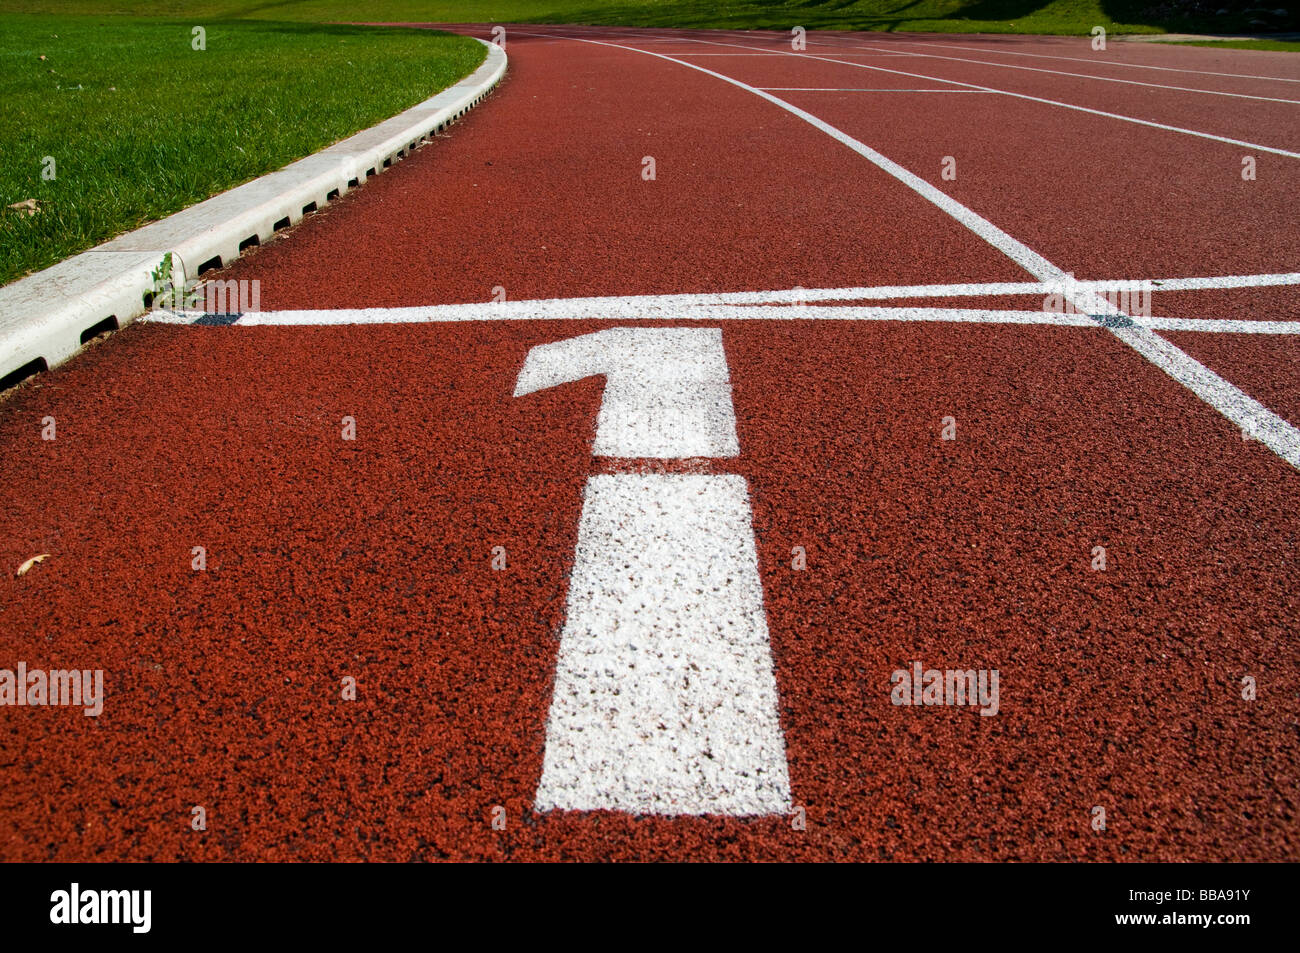 Running track number 1 in a stadium - Stock Image